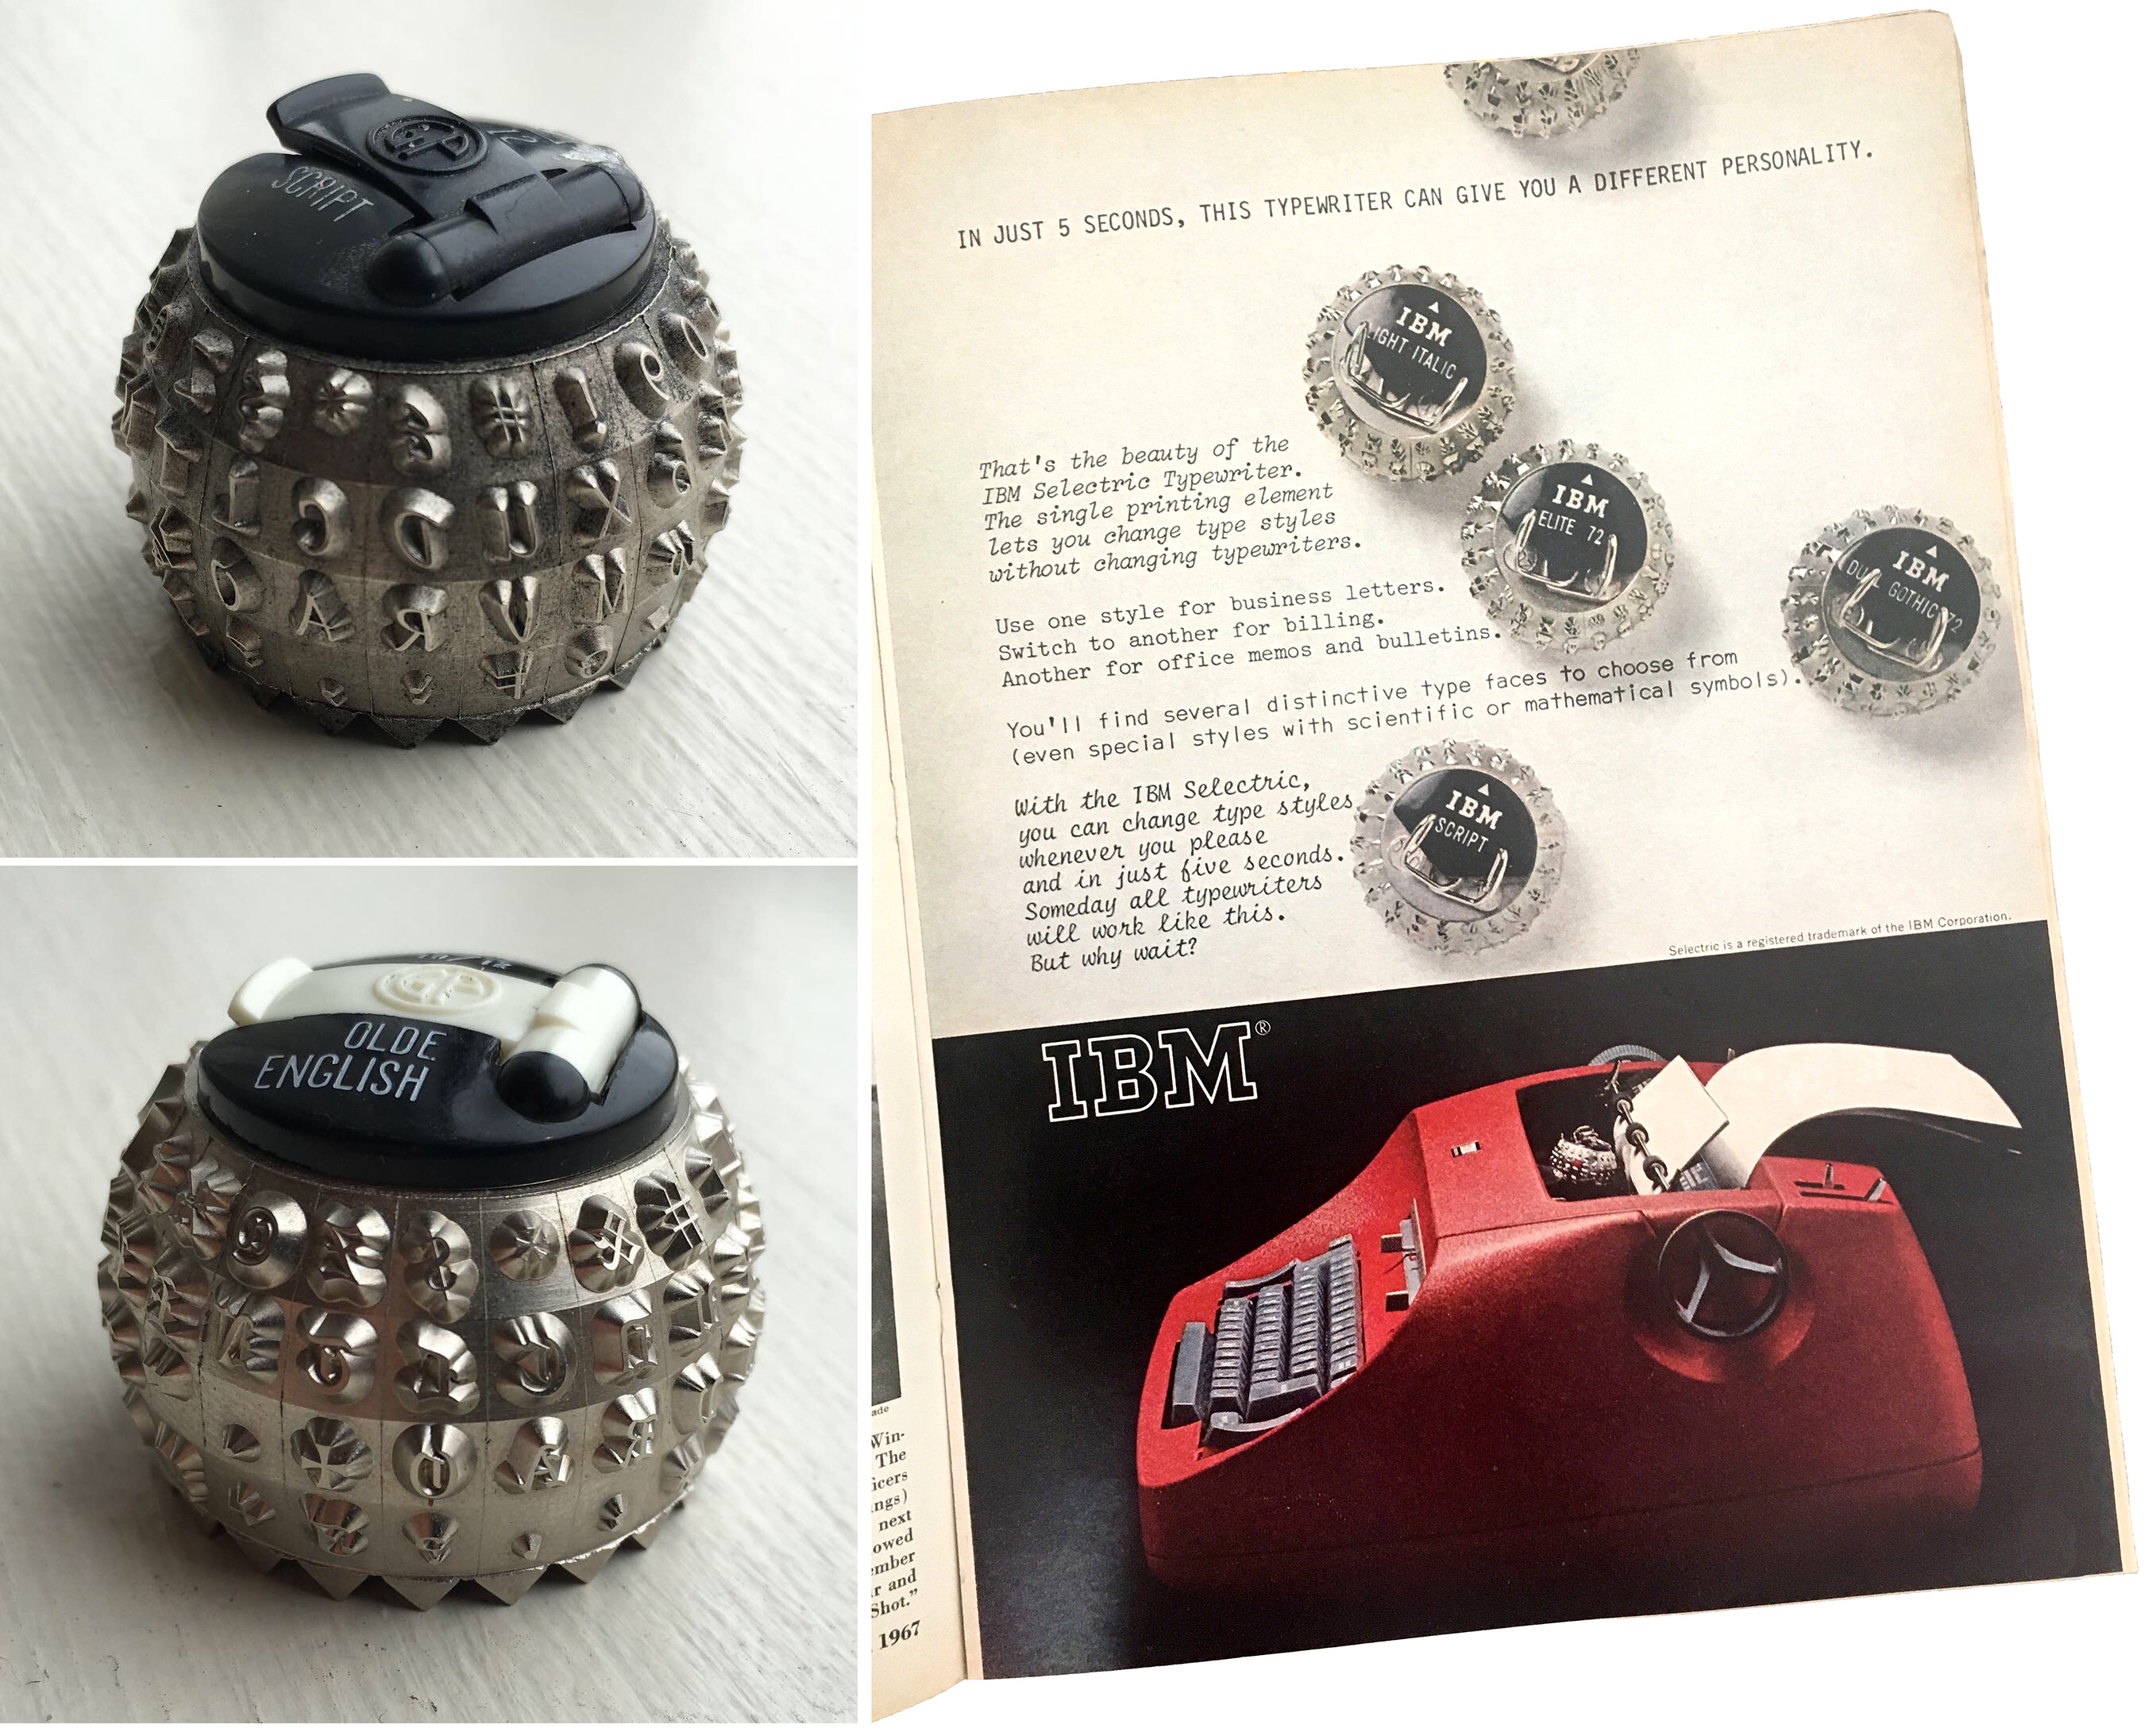 IBM Selectric font elements and ad